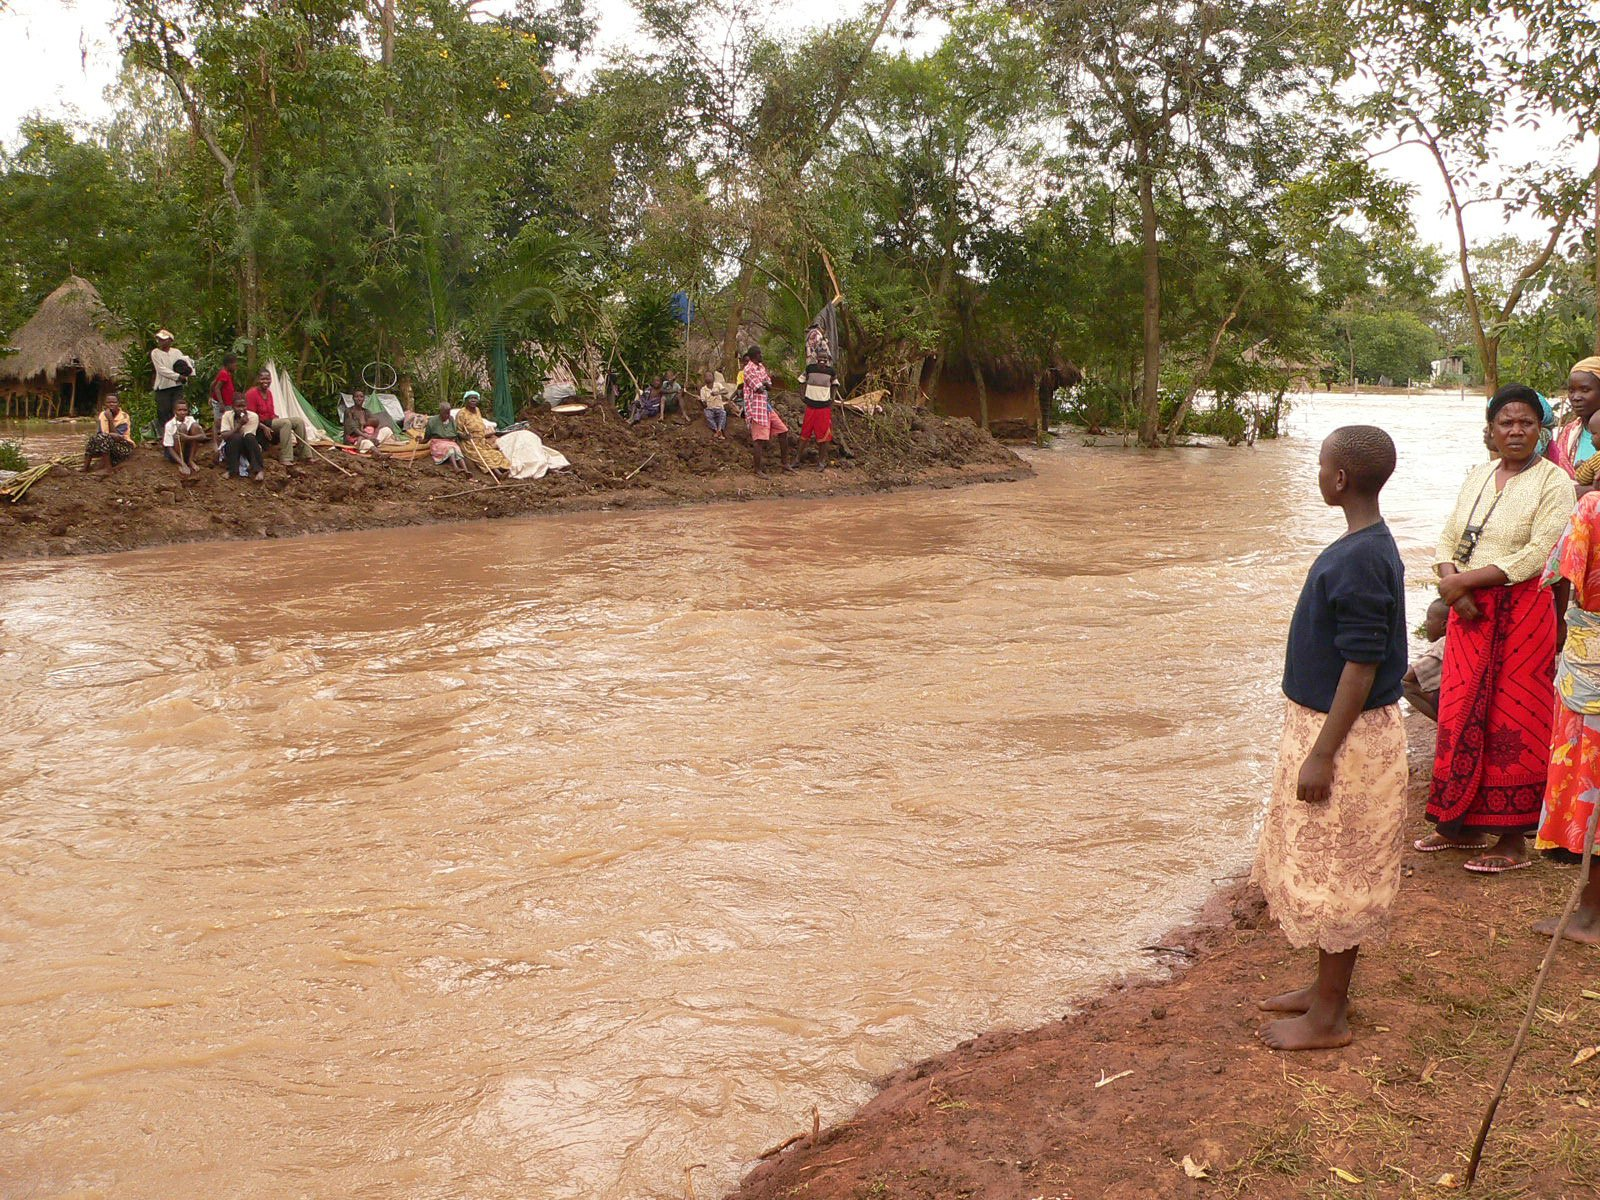 Budalangi residents are stranded as floods tear through their village in Busia. More than 40,000 people have been displaced after a dyke was washed away at Makunda, River Nzoia, Kenya, August 16, 2007.